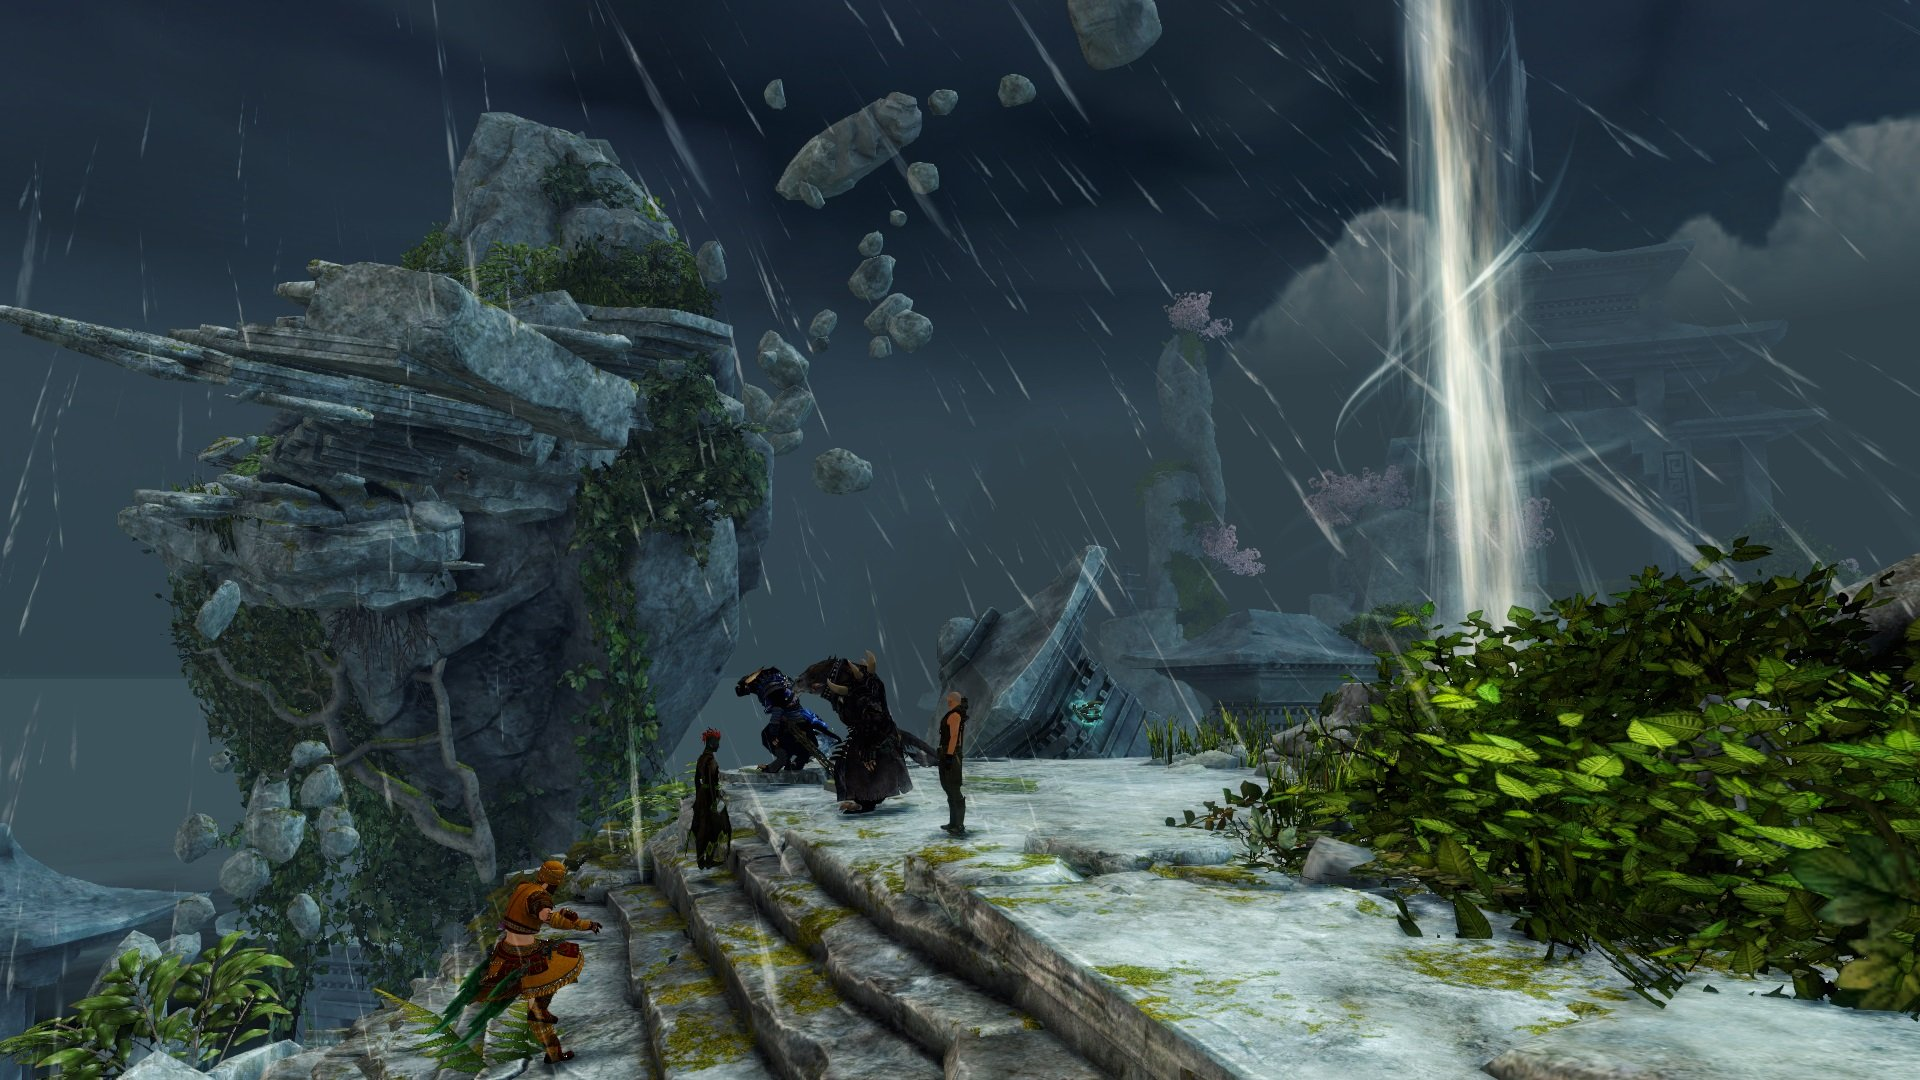 Guild Wars 2 Sunqua Peak nuovo fractal Guild Wars 2 Cantha jumping puzzle GW2